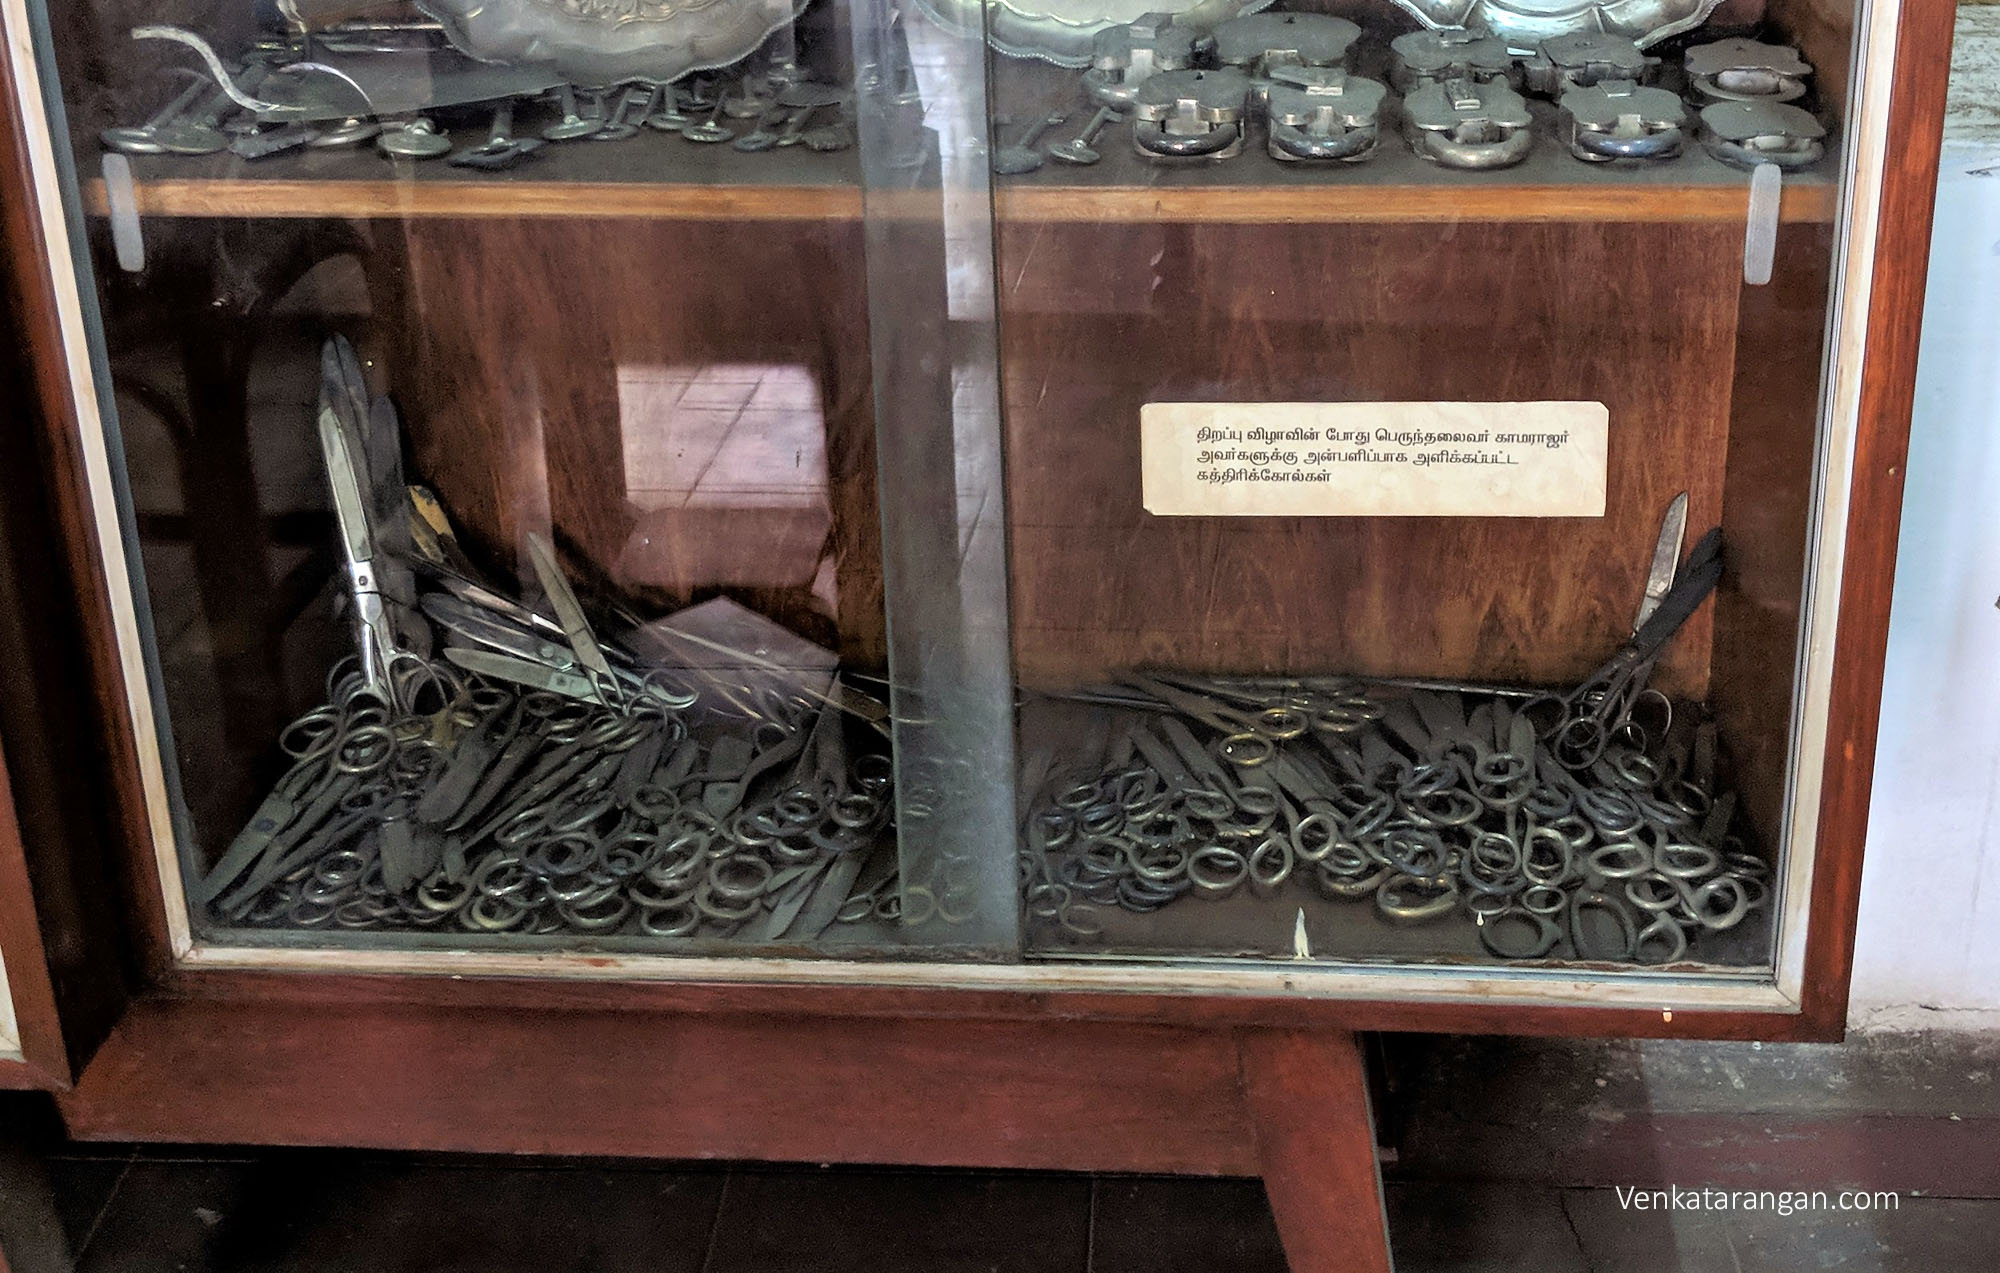 Exhibit of the many scissors that were presented to Kamarajar during inauguration events